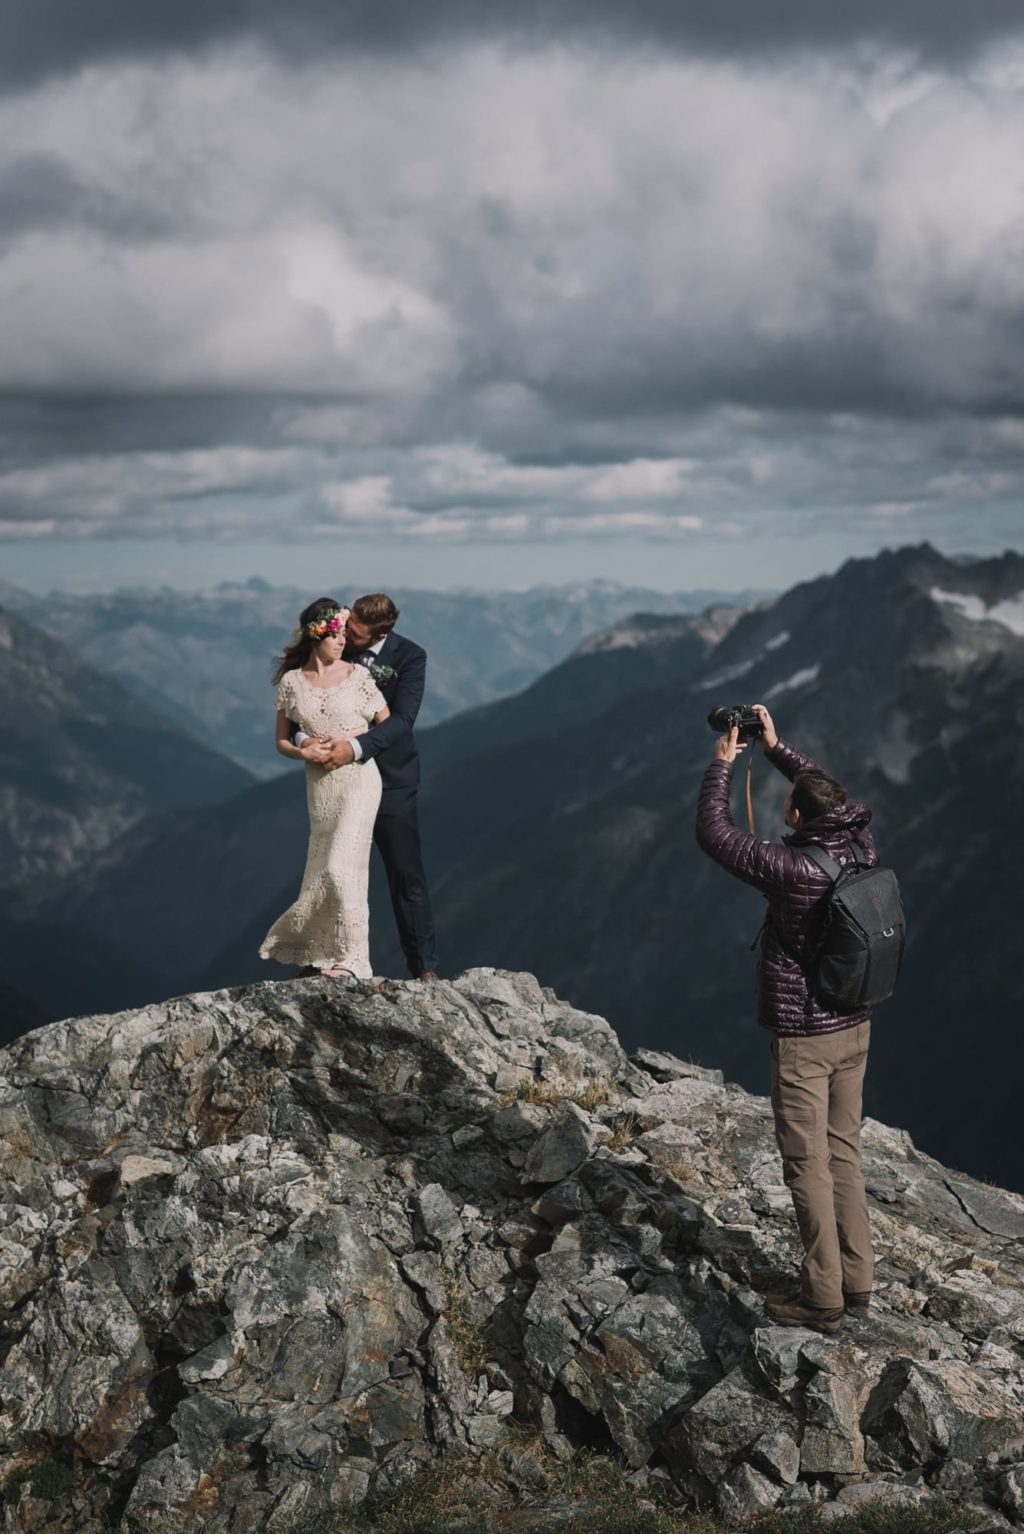 photographer taking a photo of bride and groom